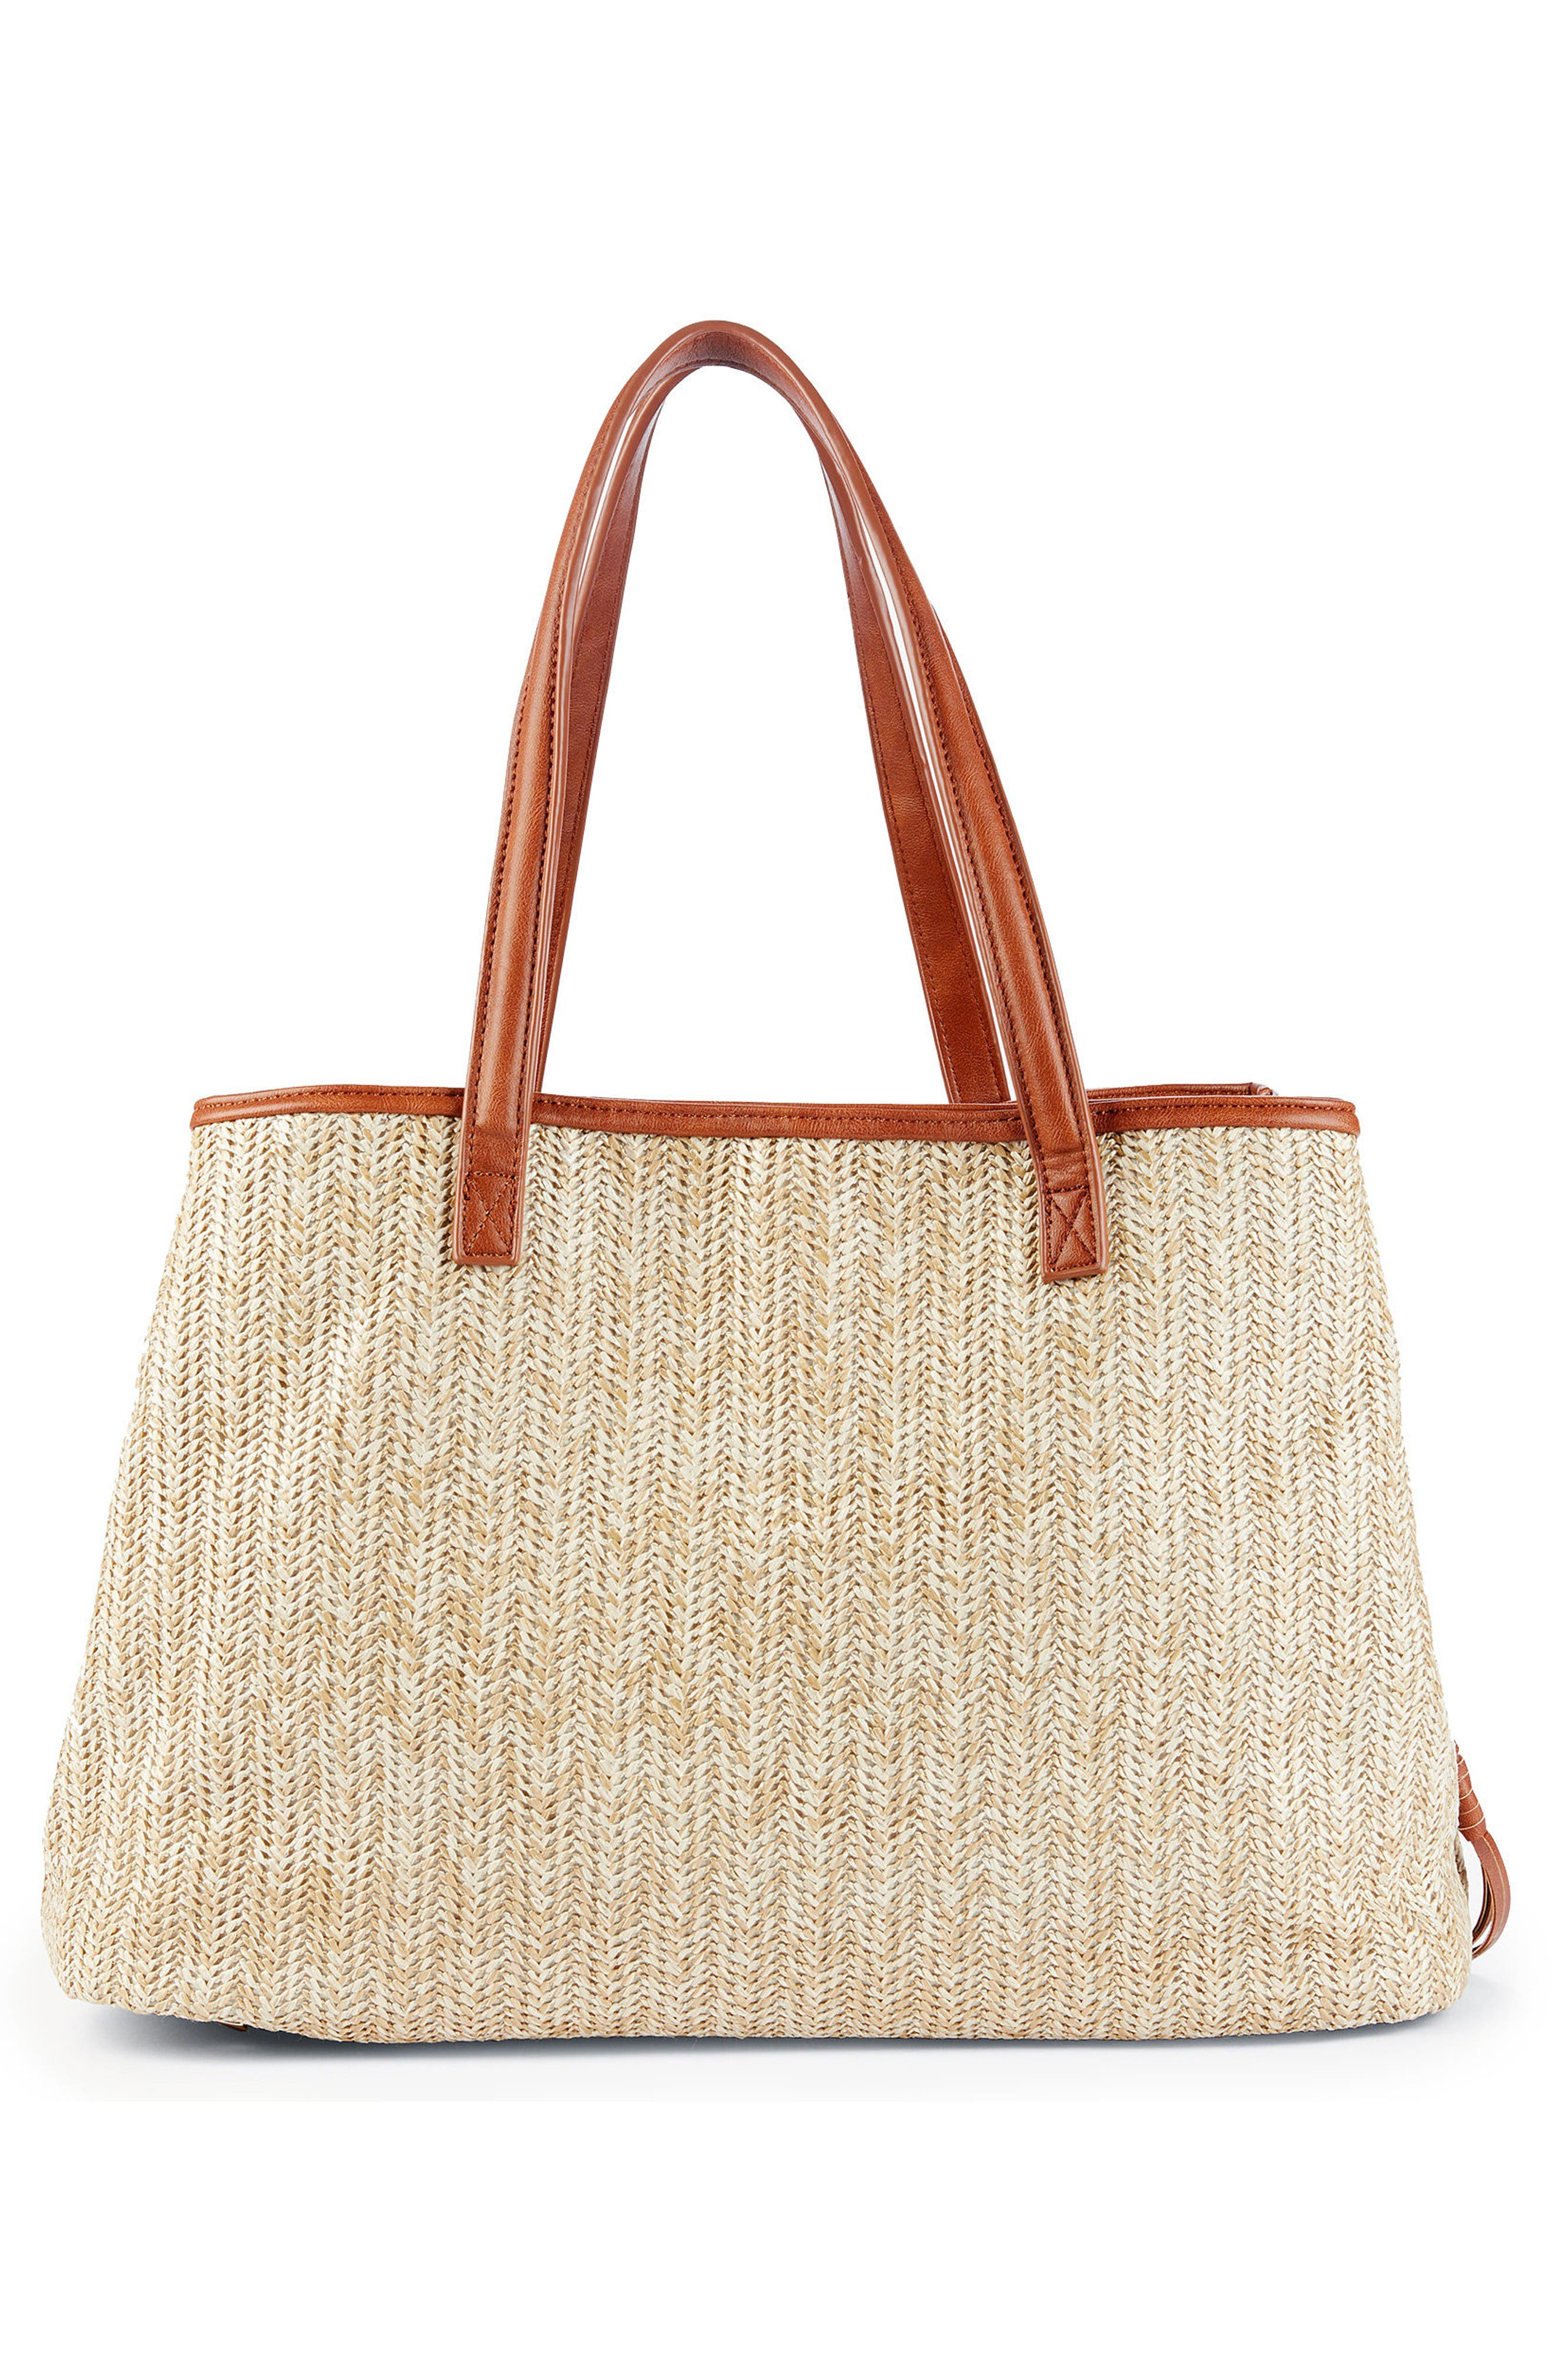 Pipper Faux Leather Tote,                             Alternate thumbnail 3, color,                             Natural